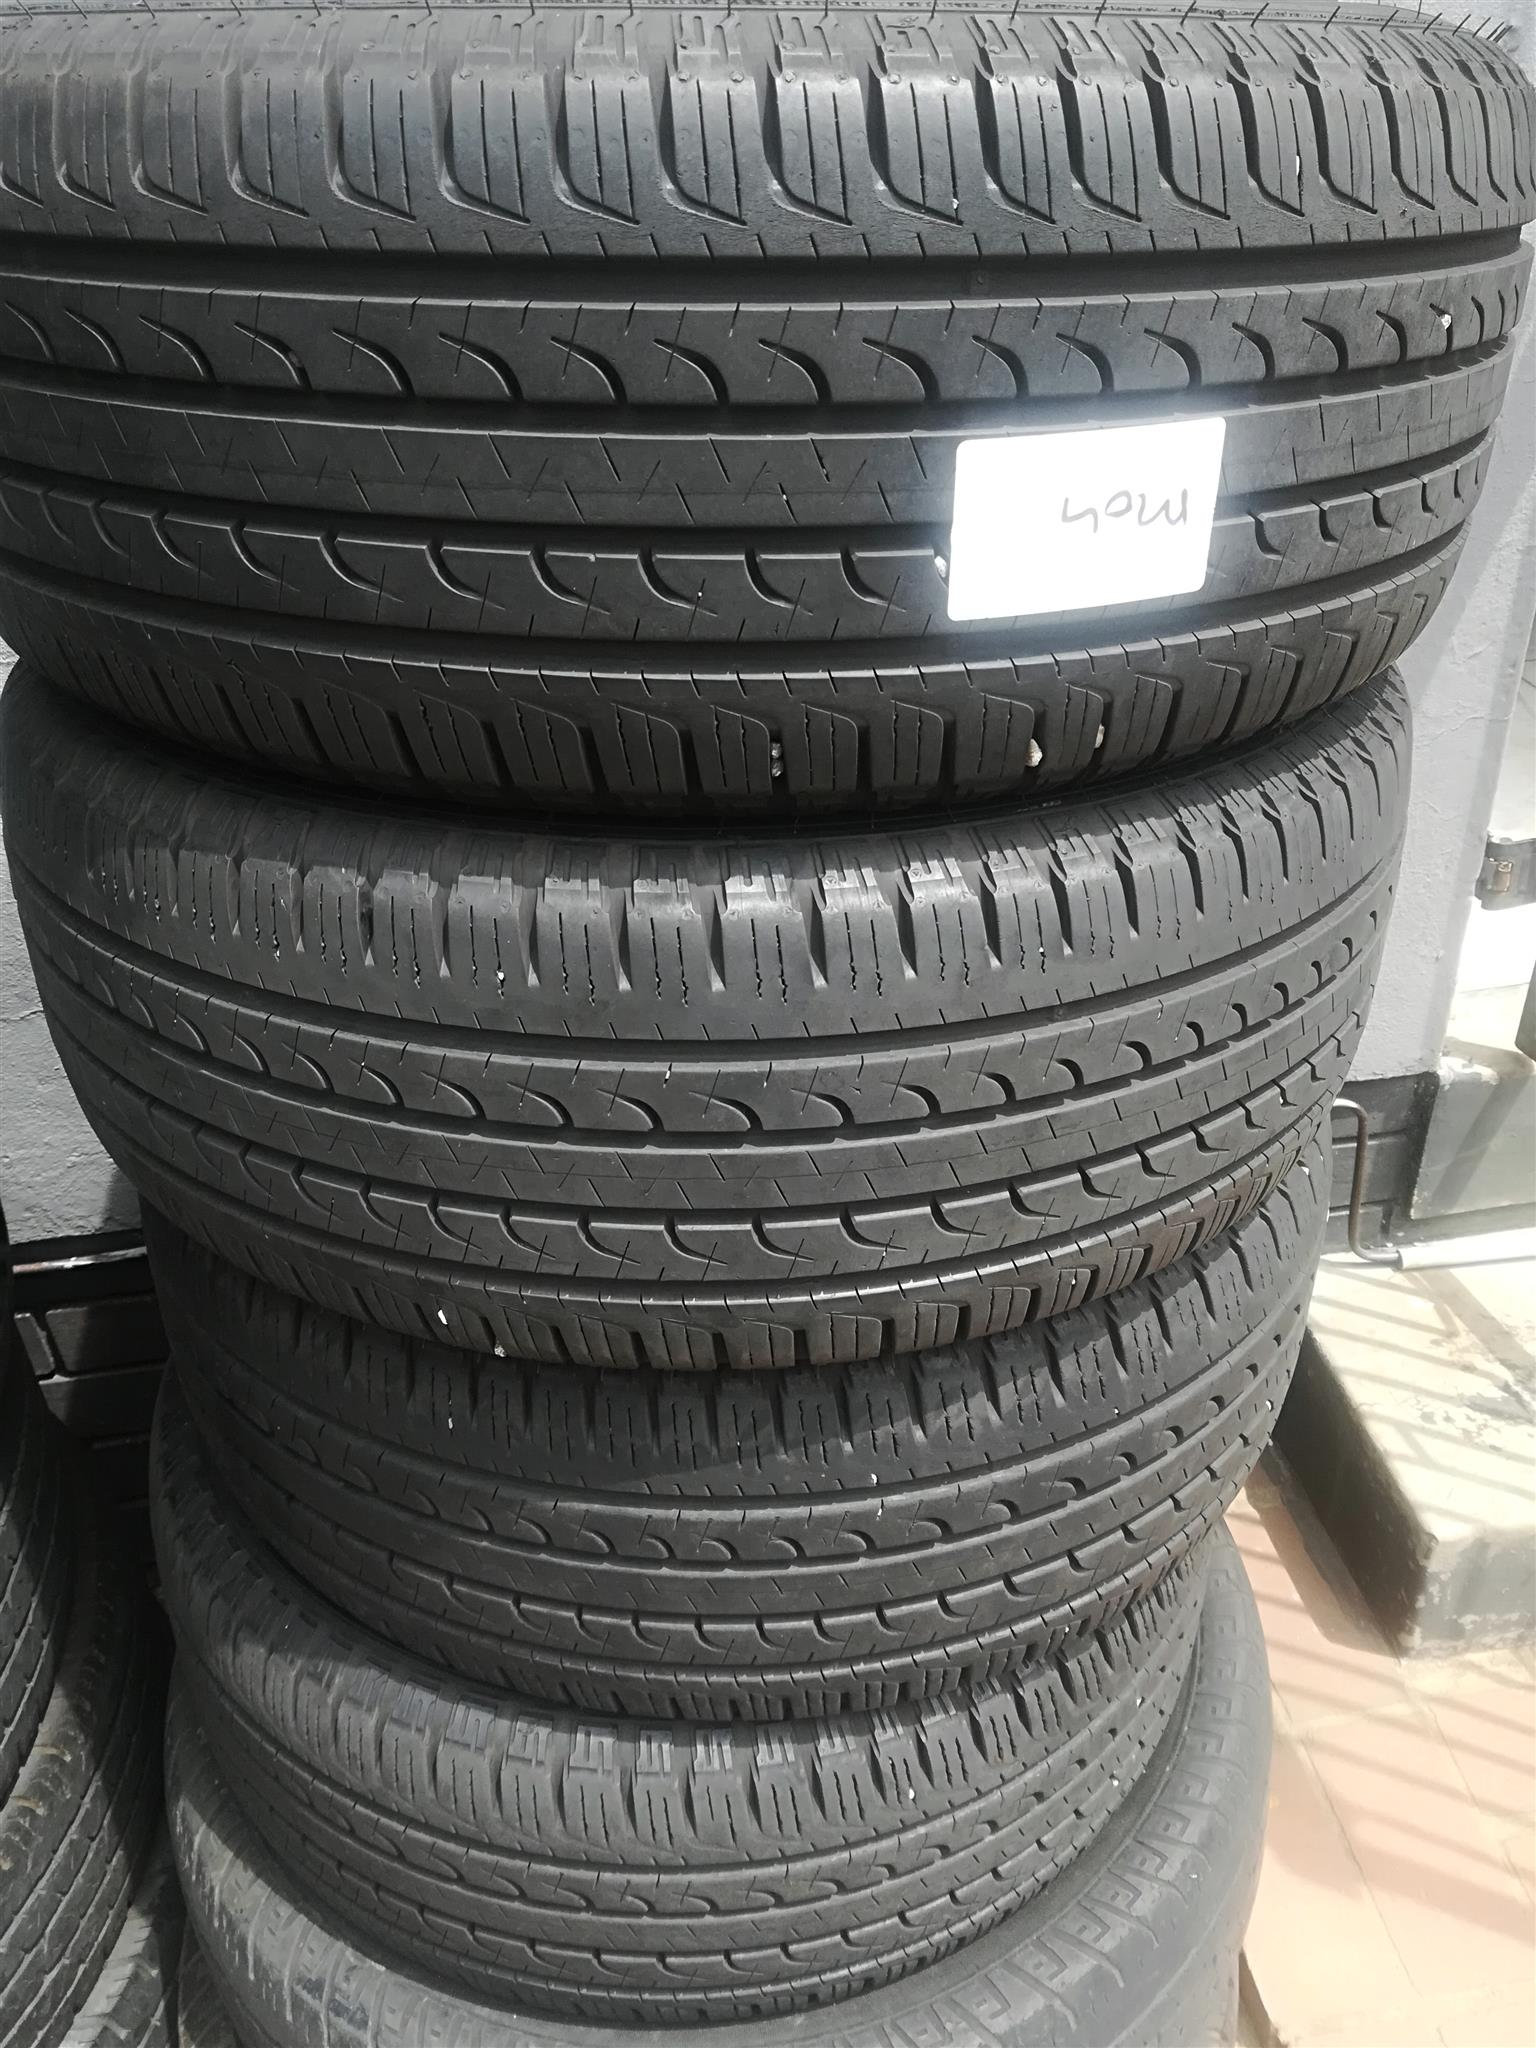 Goodyear Tyres 4 X 235 60 16 Goodyear Suv Tyres For Sale